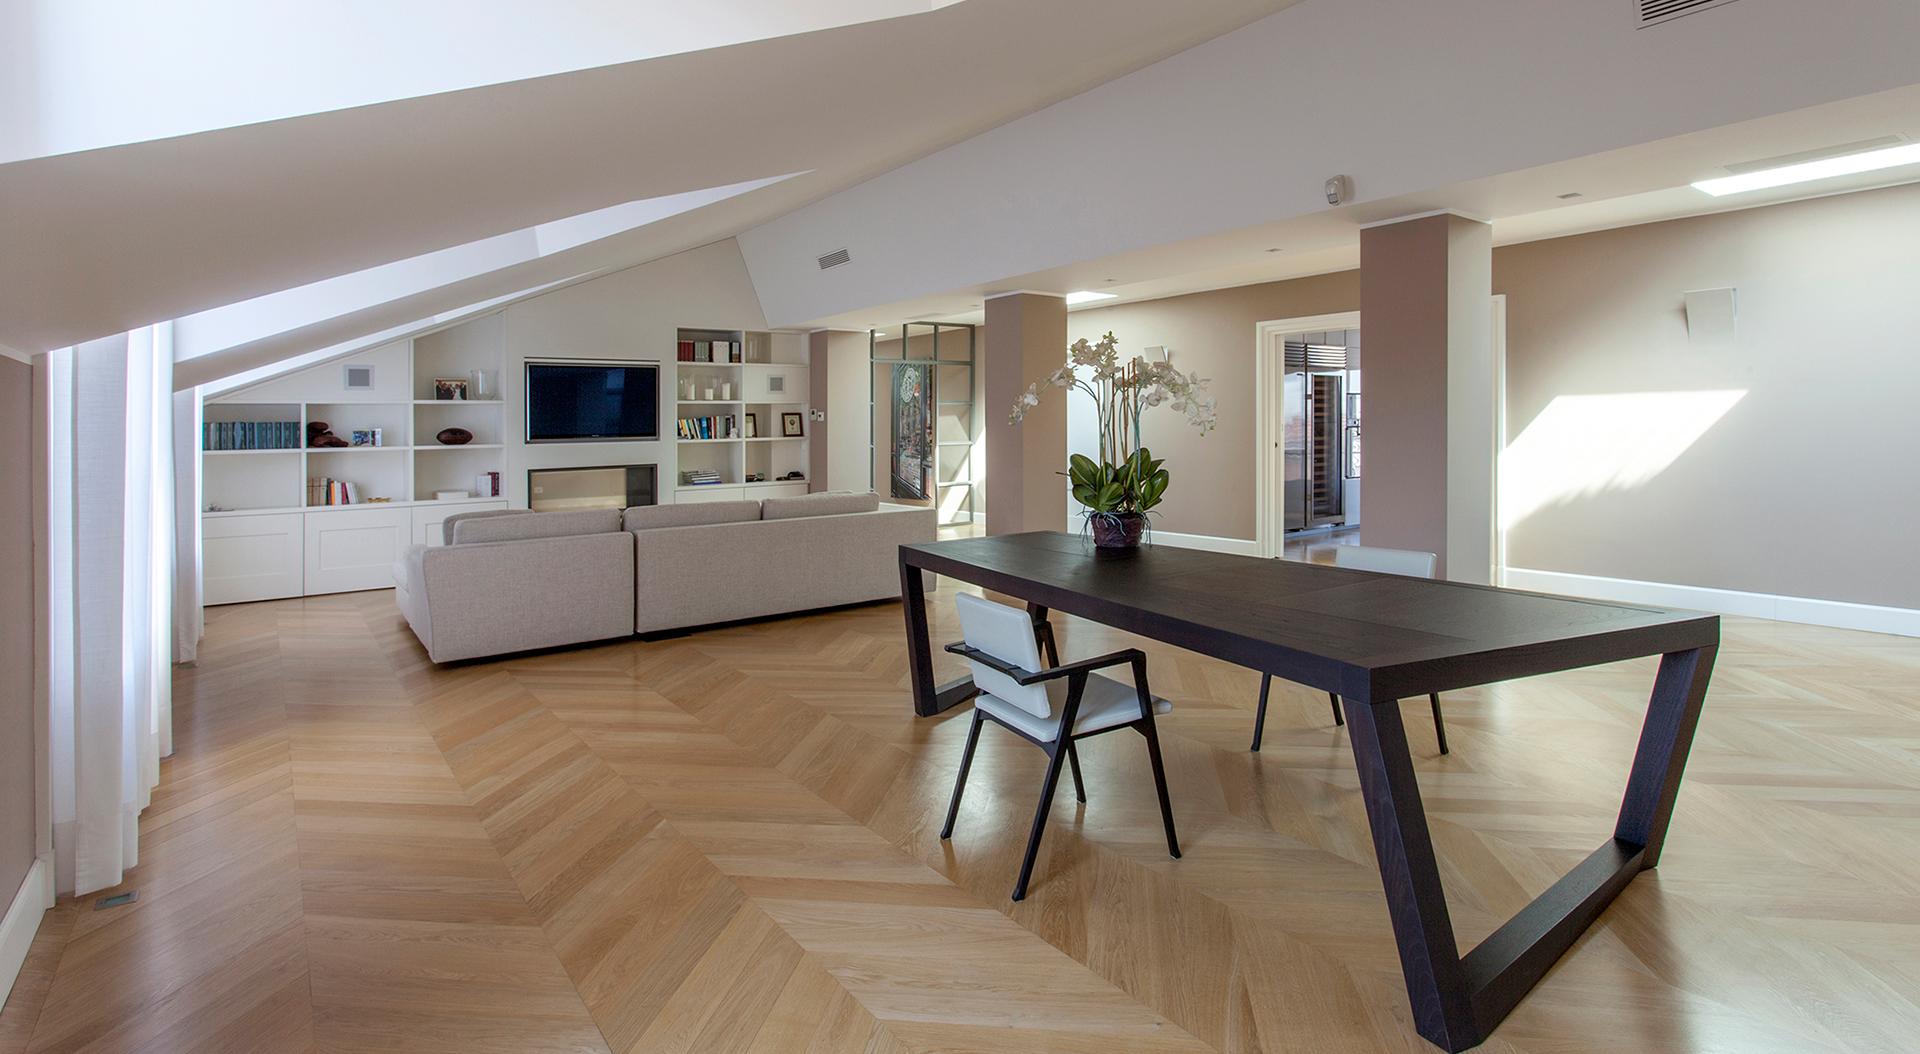 Architetto Roberto Bagnato - Luxury Interior Design